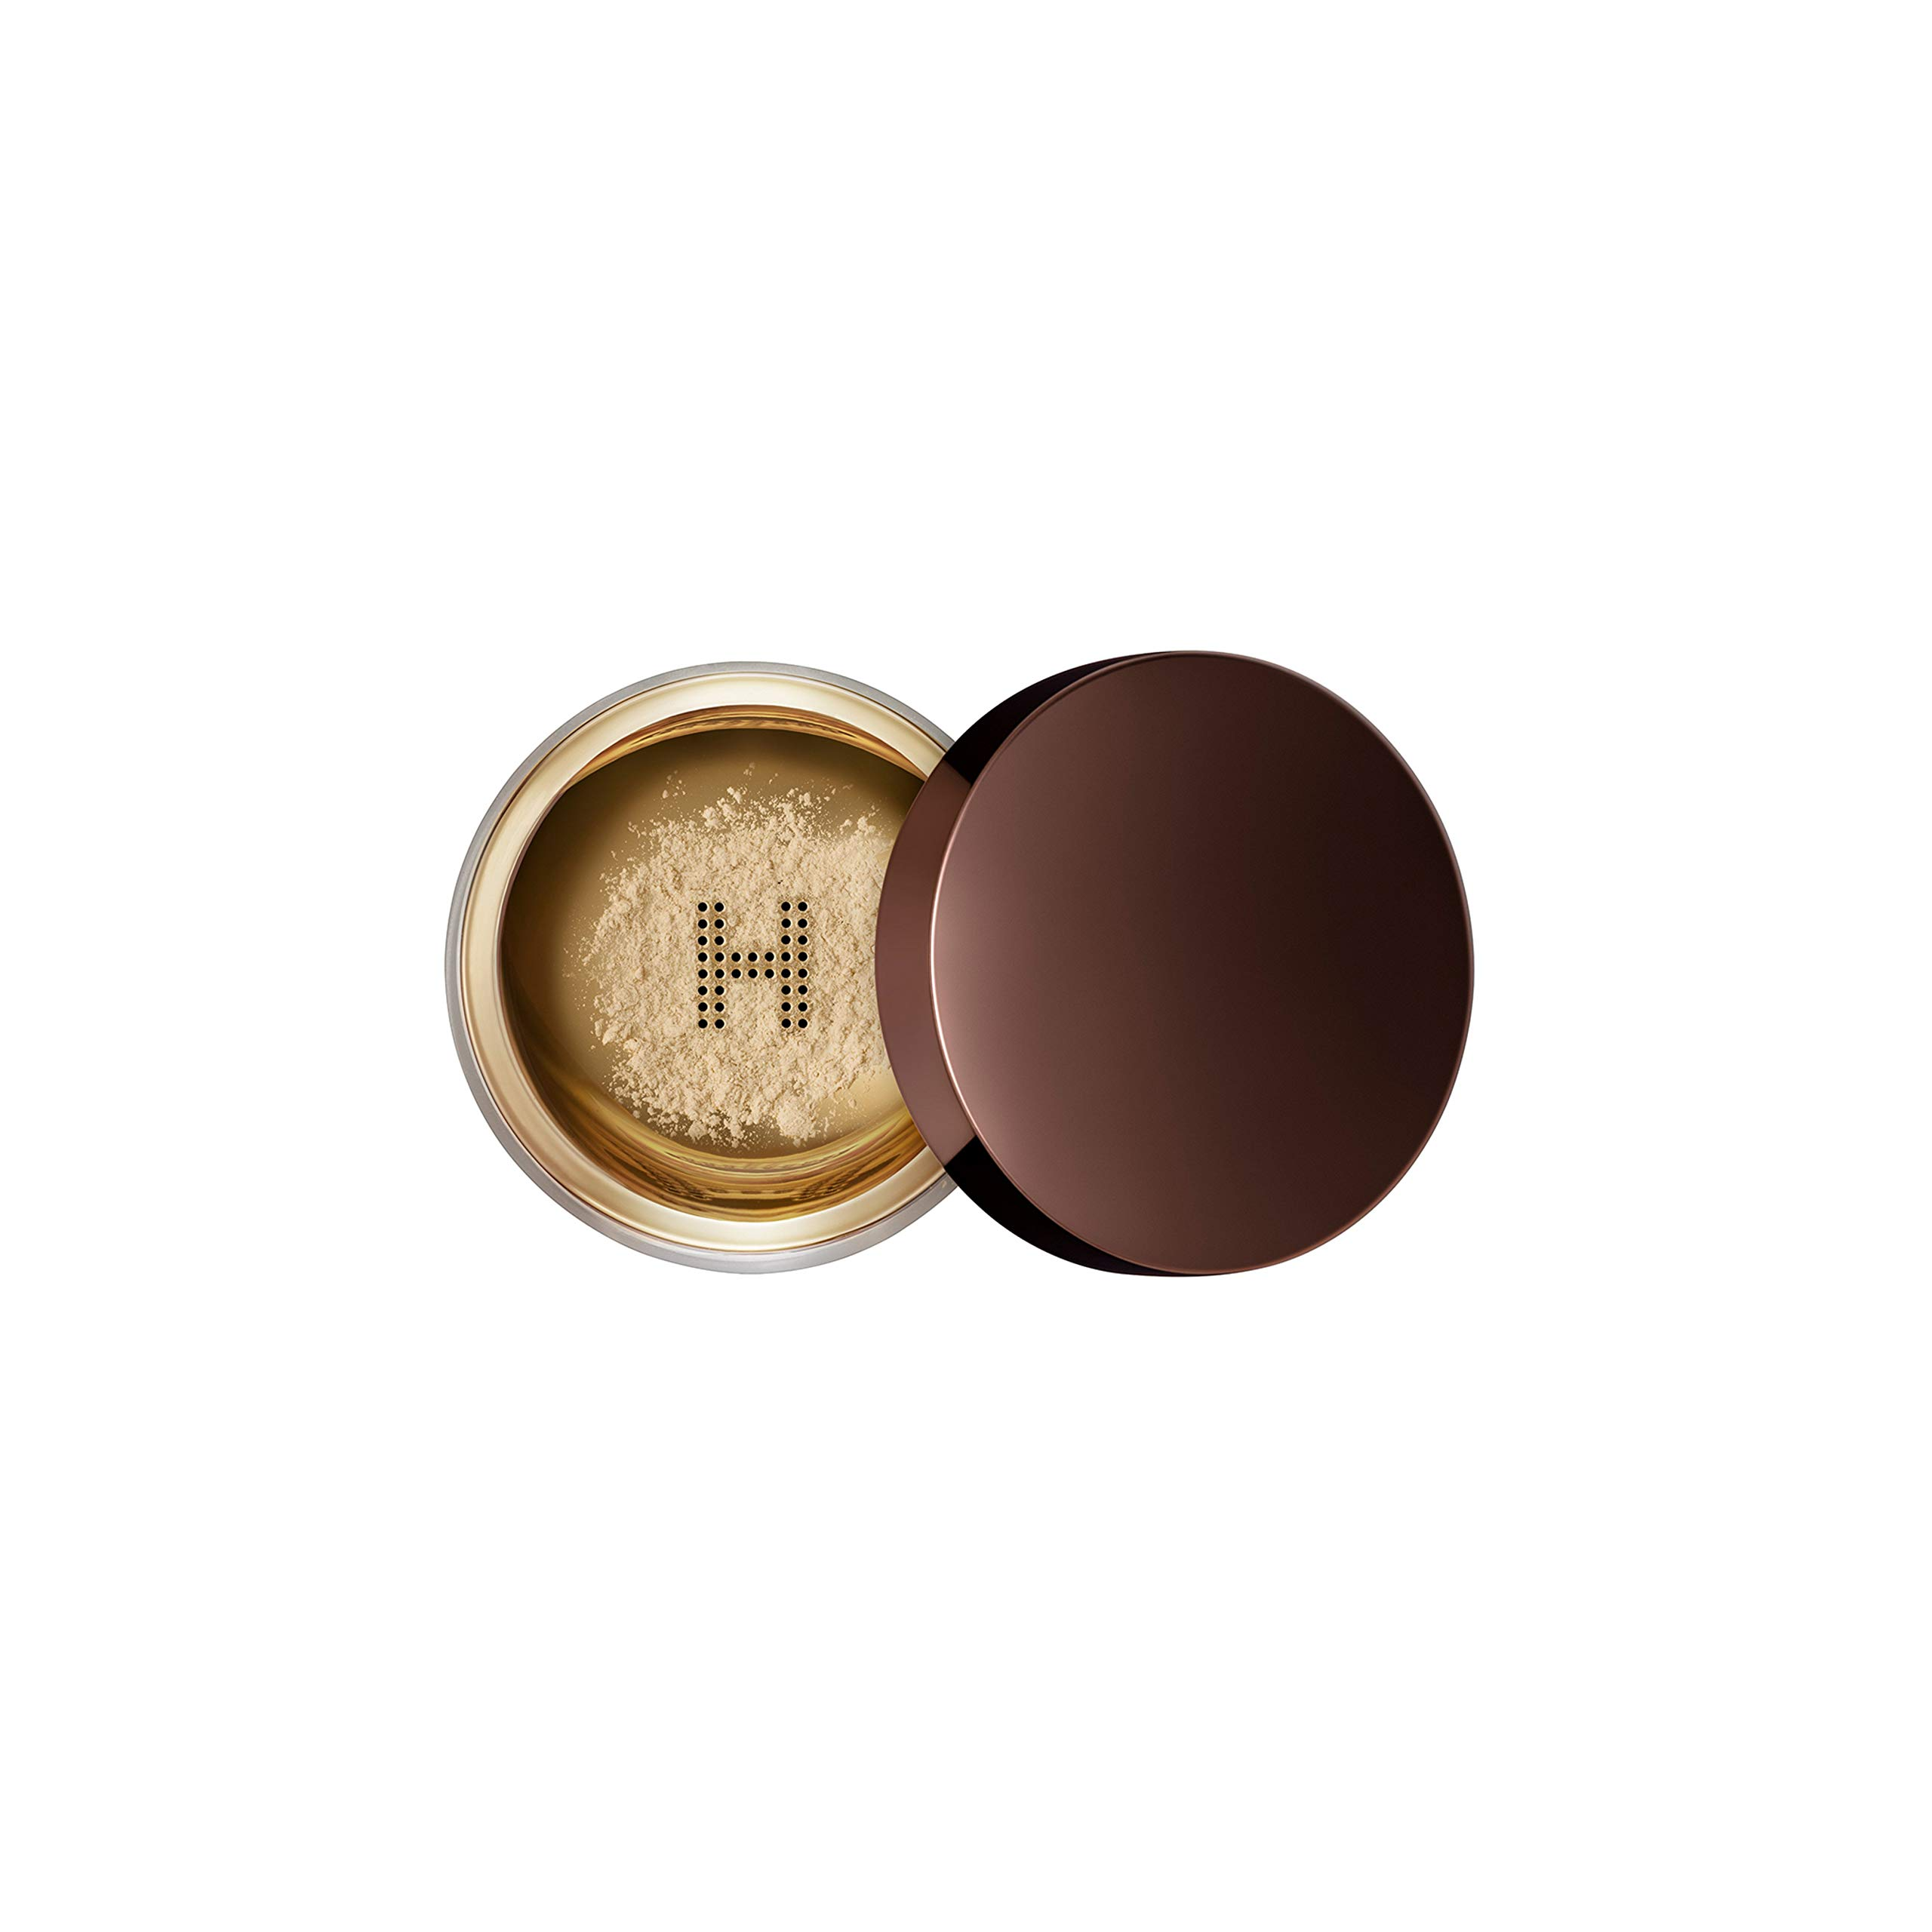 Hourglass Cosmetics Veil Translucent Setting Powder by Hourglass Cosmetics